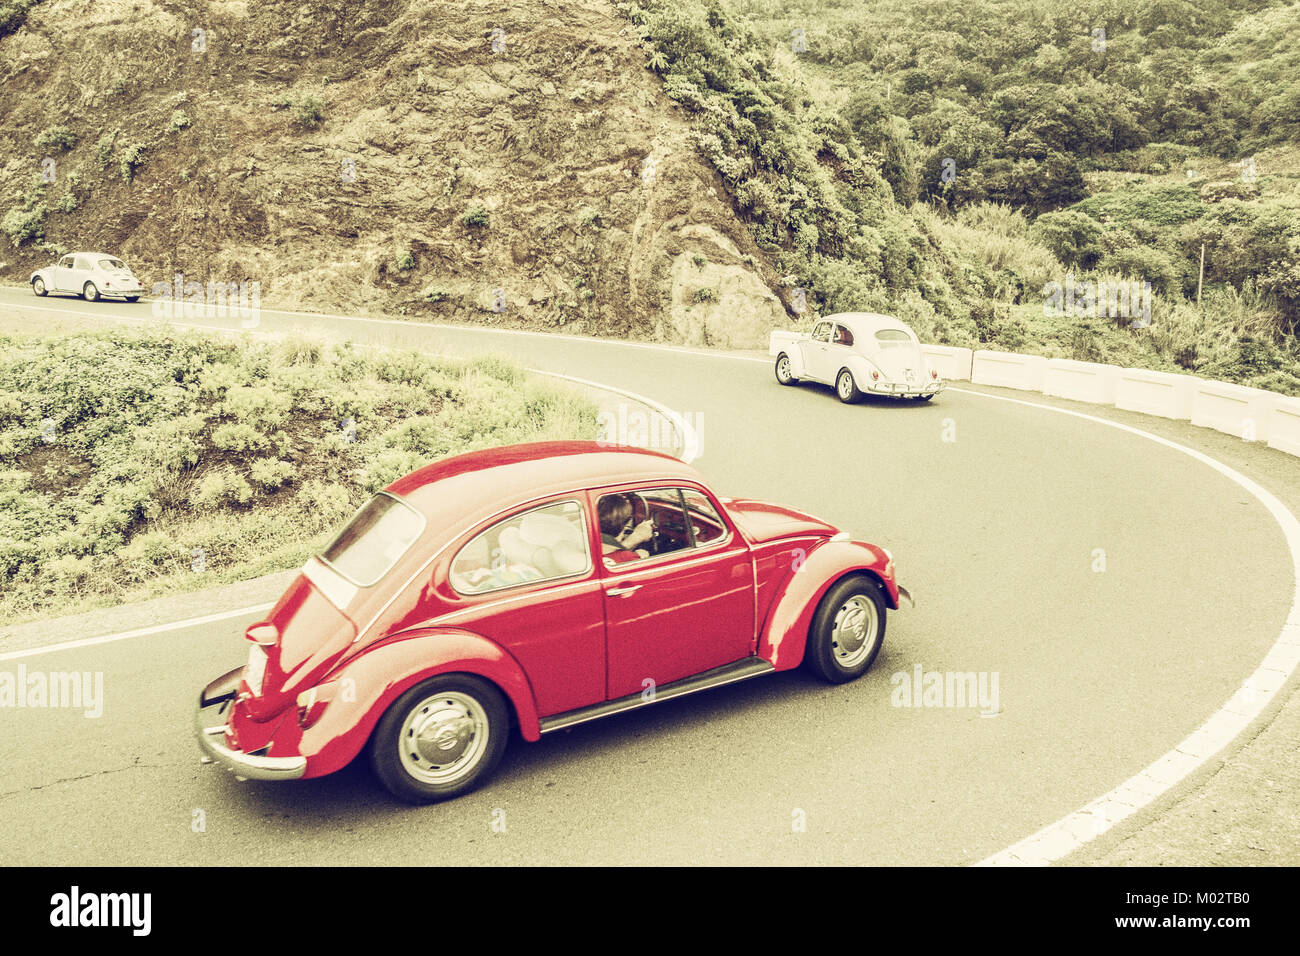 Retro, vintage processing of Volkswagen Beetle on mountain road. Stock Photo